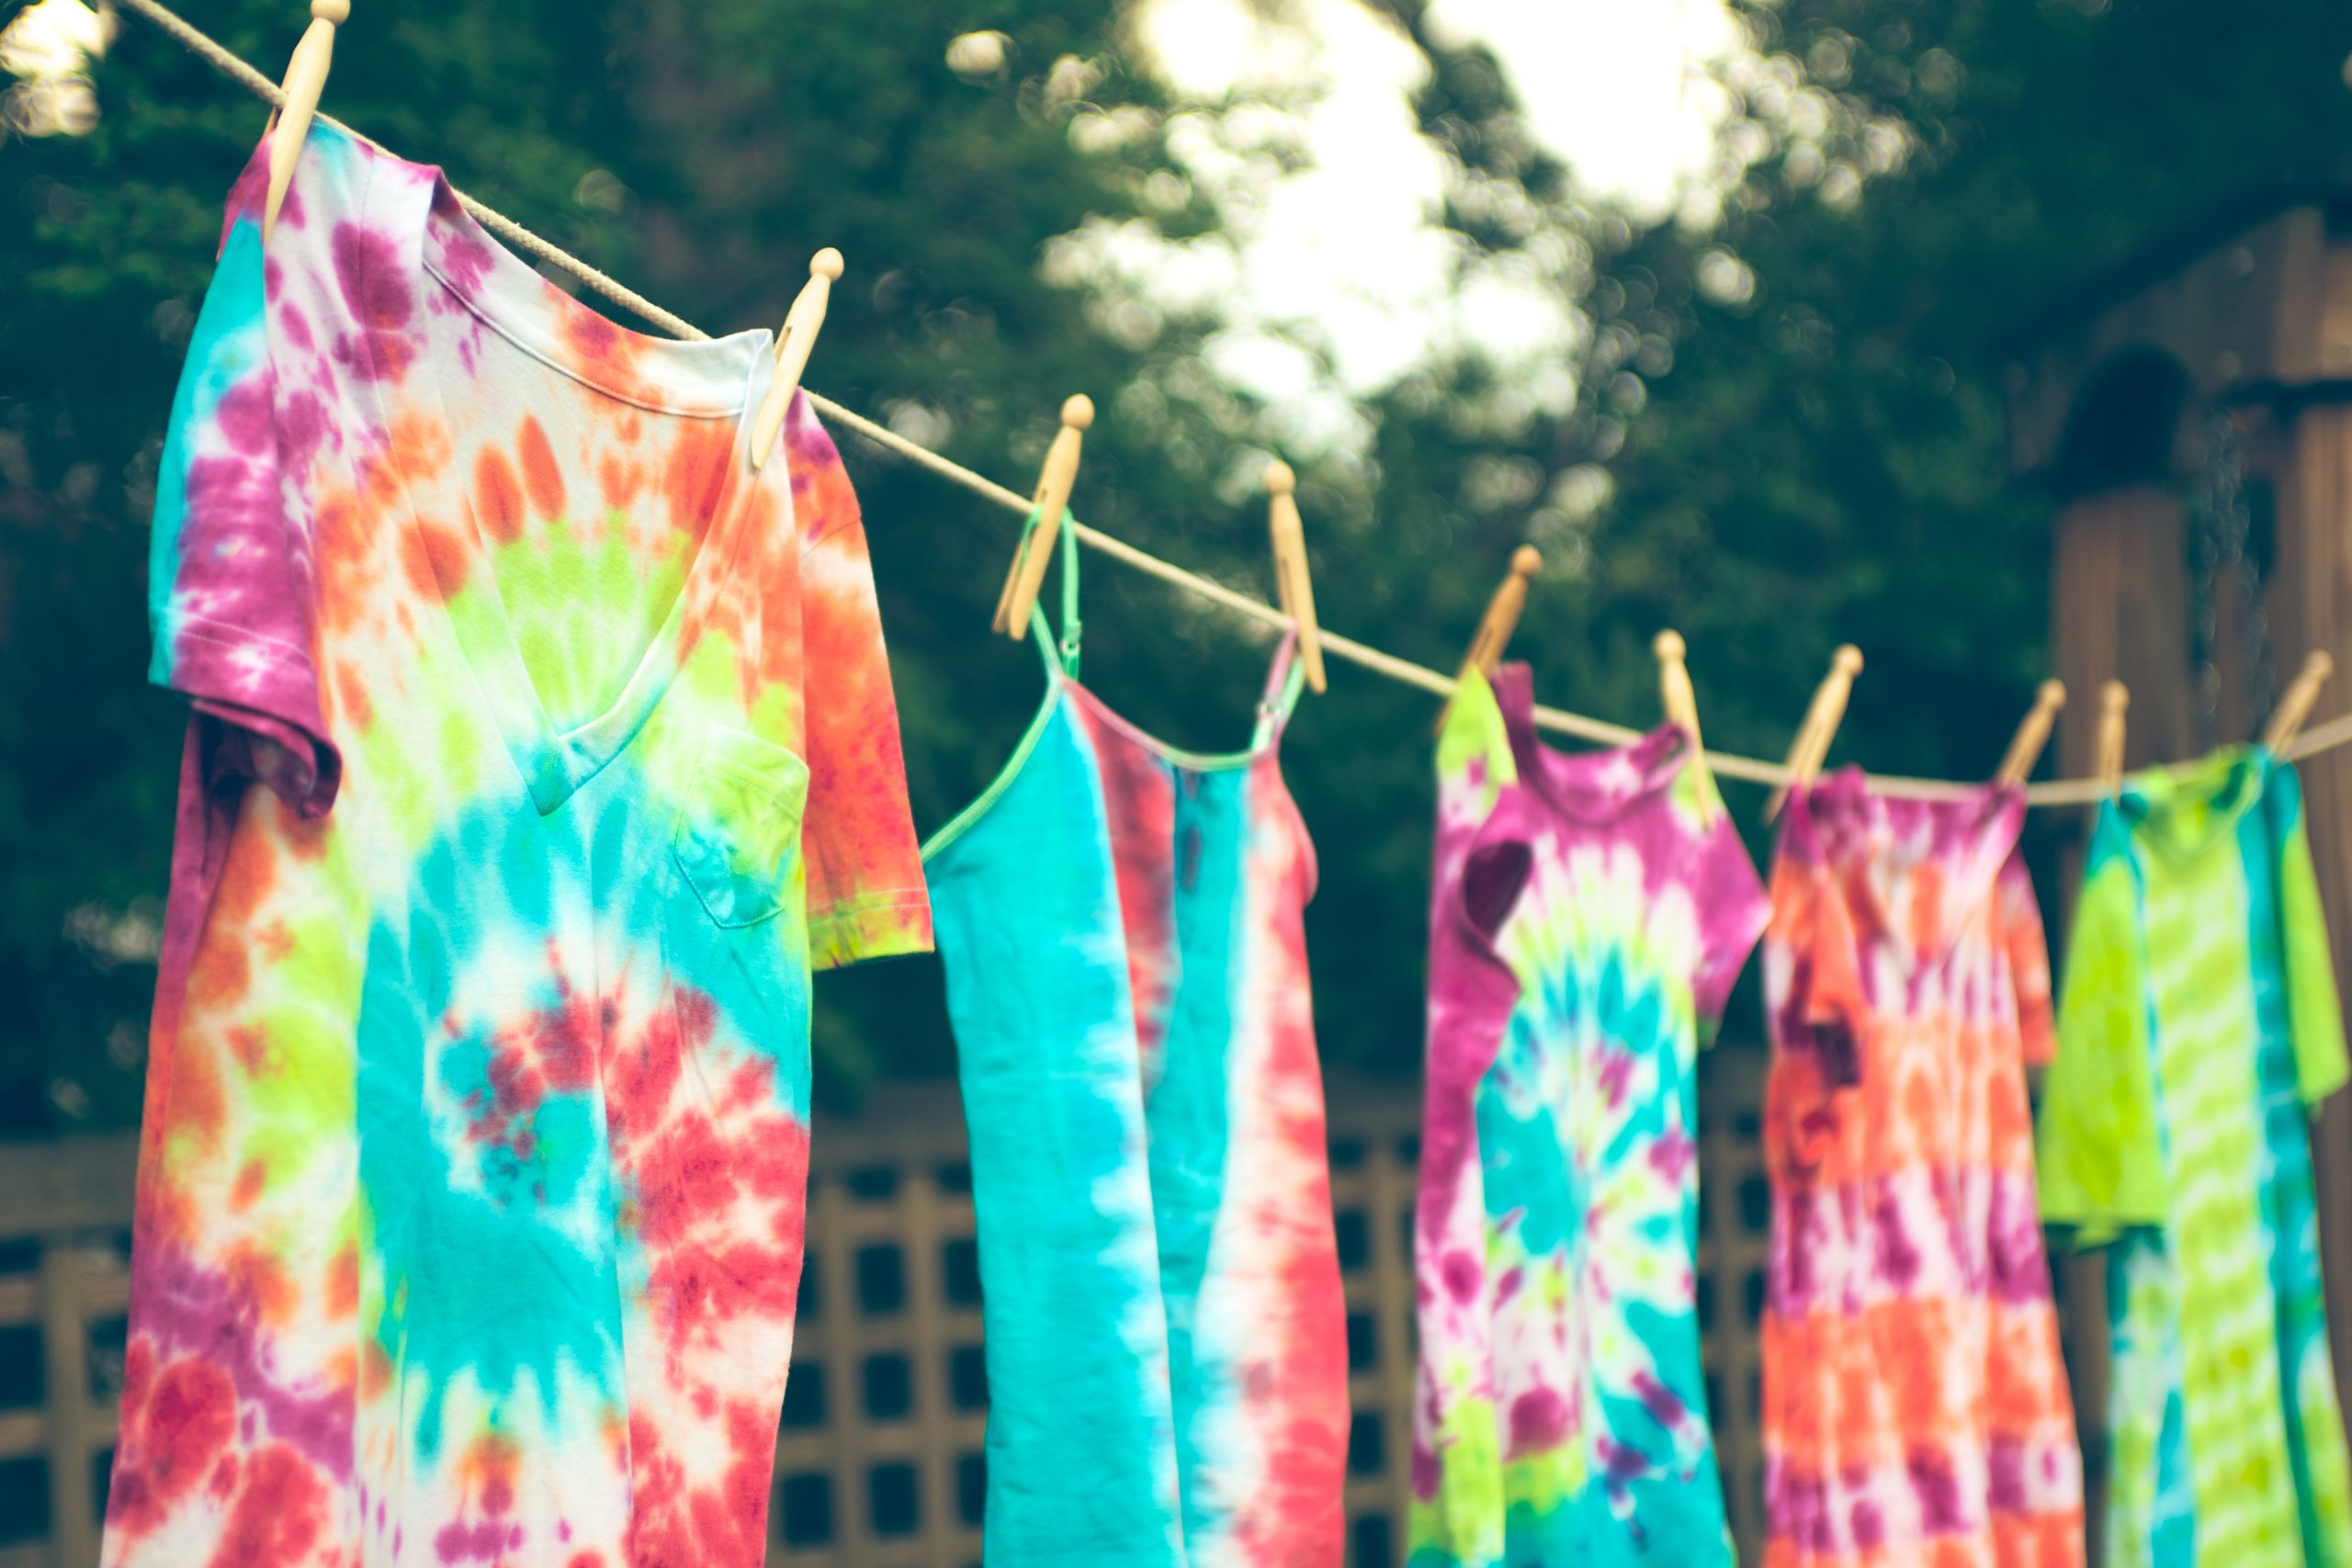 tie-dye with household items